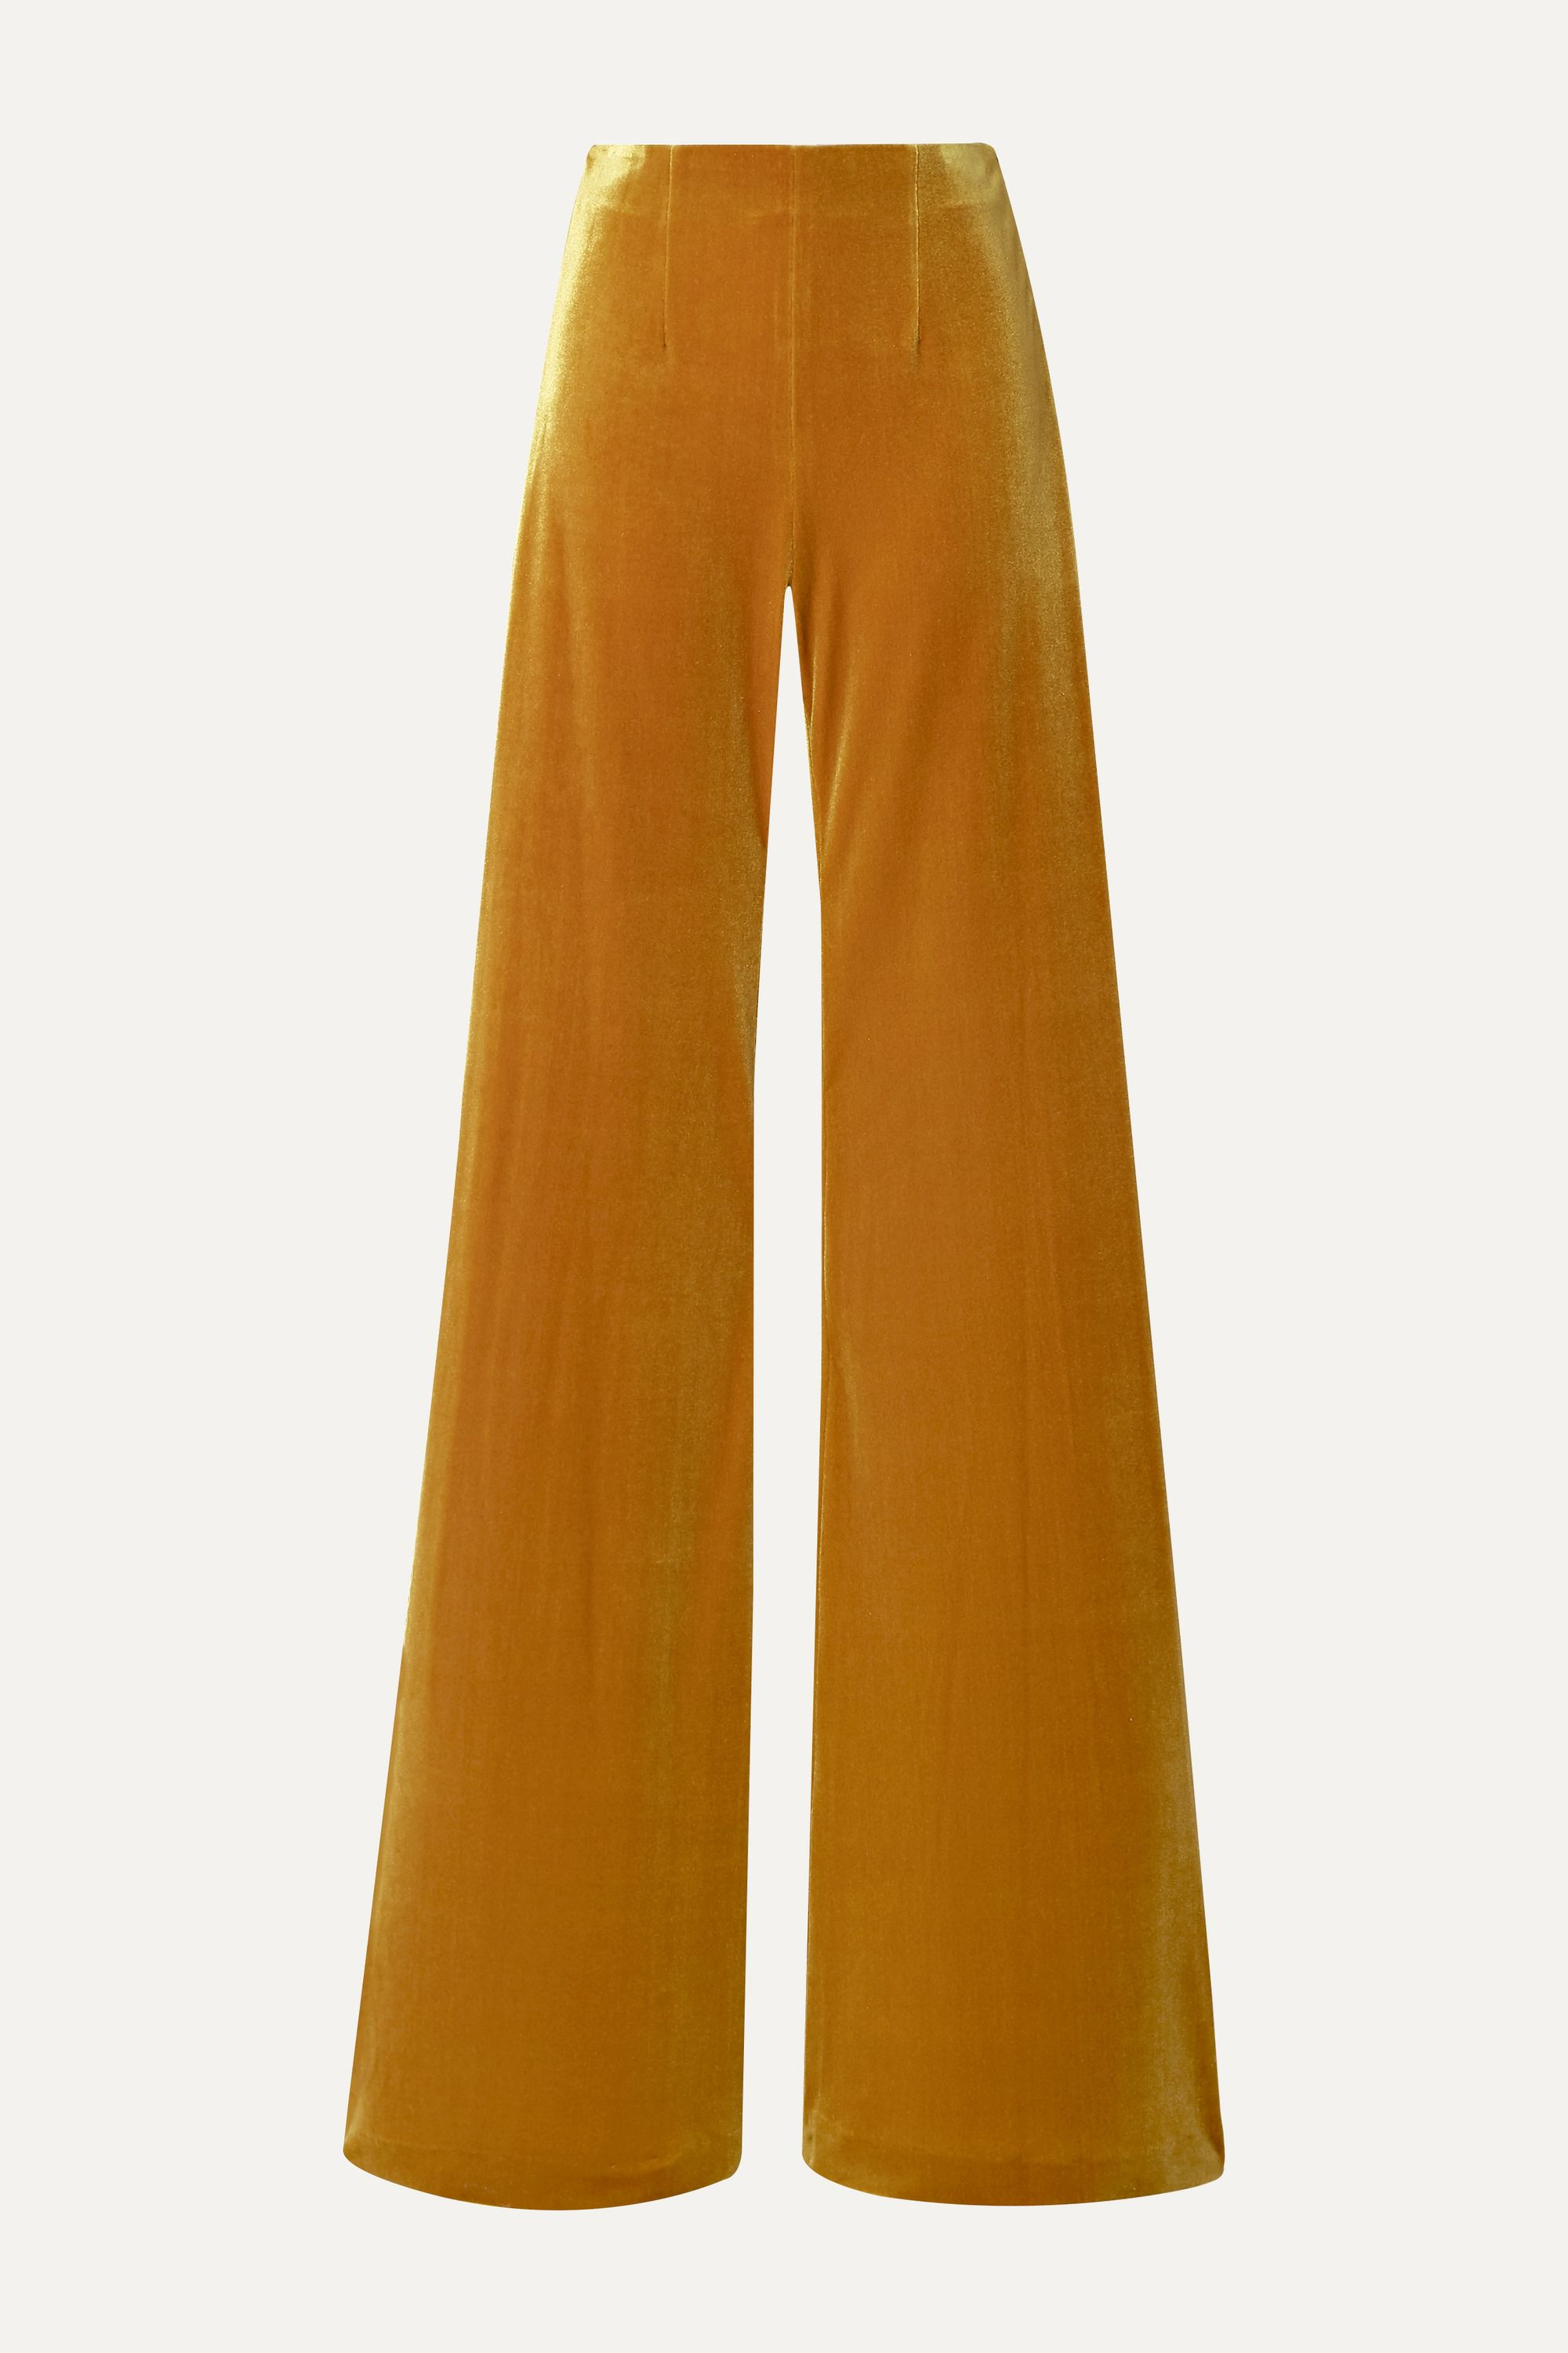 Galvan Winter Sun velvet wide-leg pants